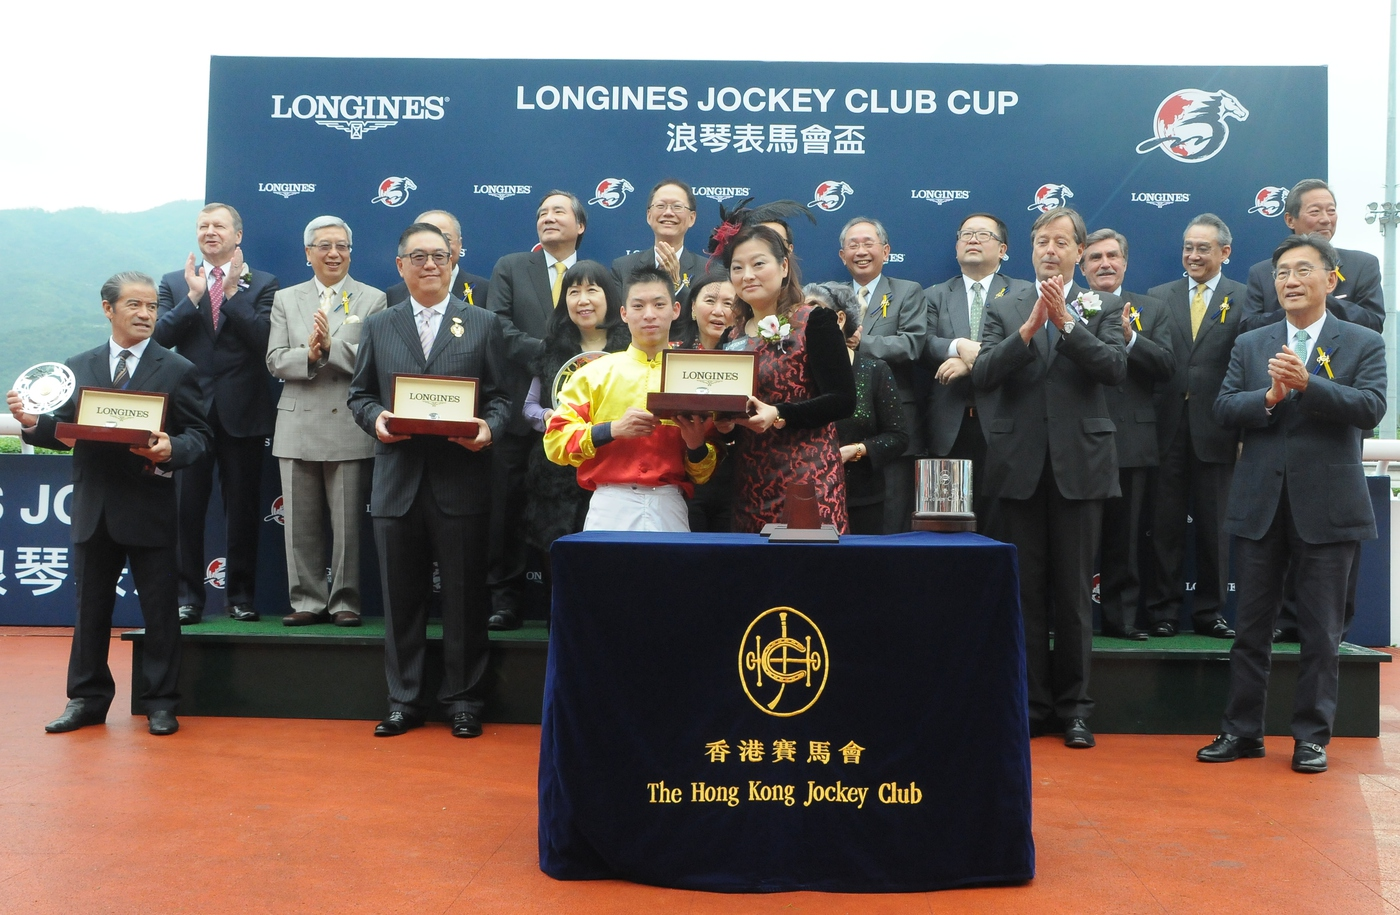 Longines Flat Racing Event: The first ever Longines Jockey Club Cup showcased Longines' passion for equestrian sports 3